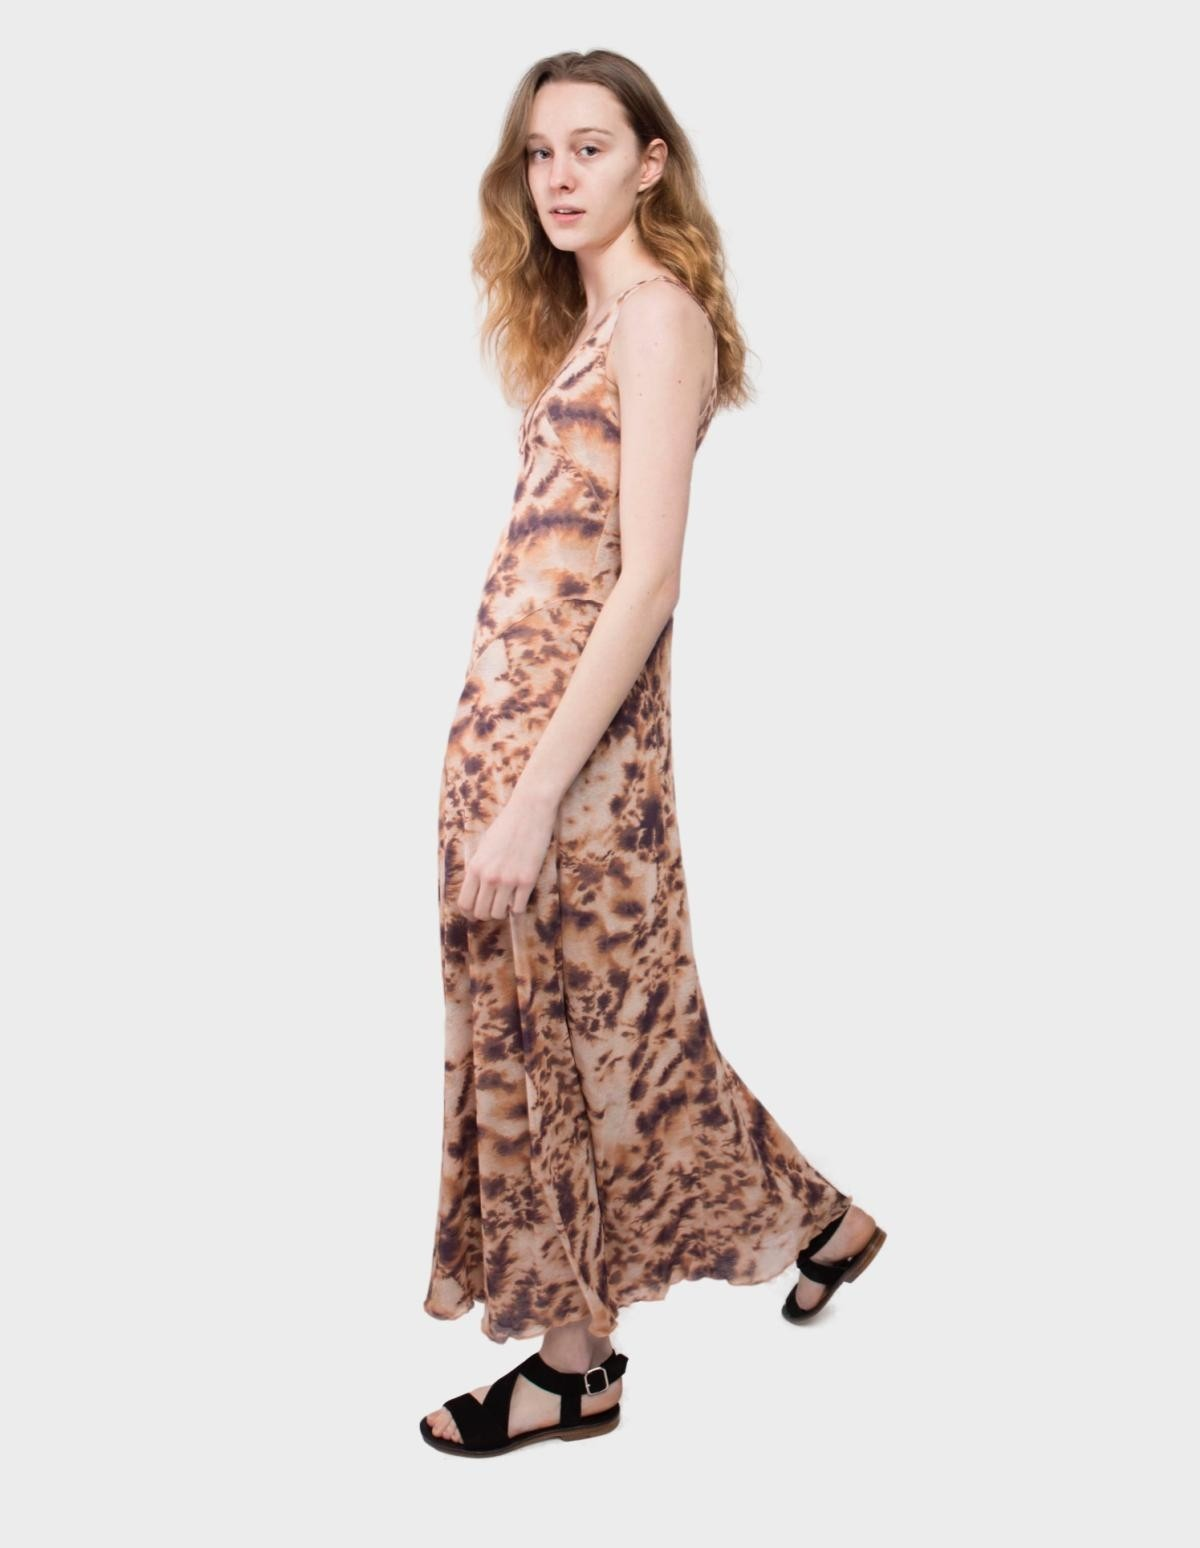 Nanushka Corinne Dress in Tie Dye